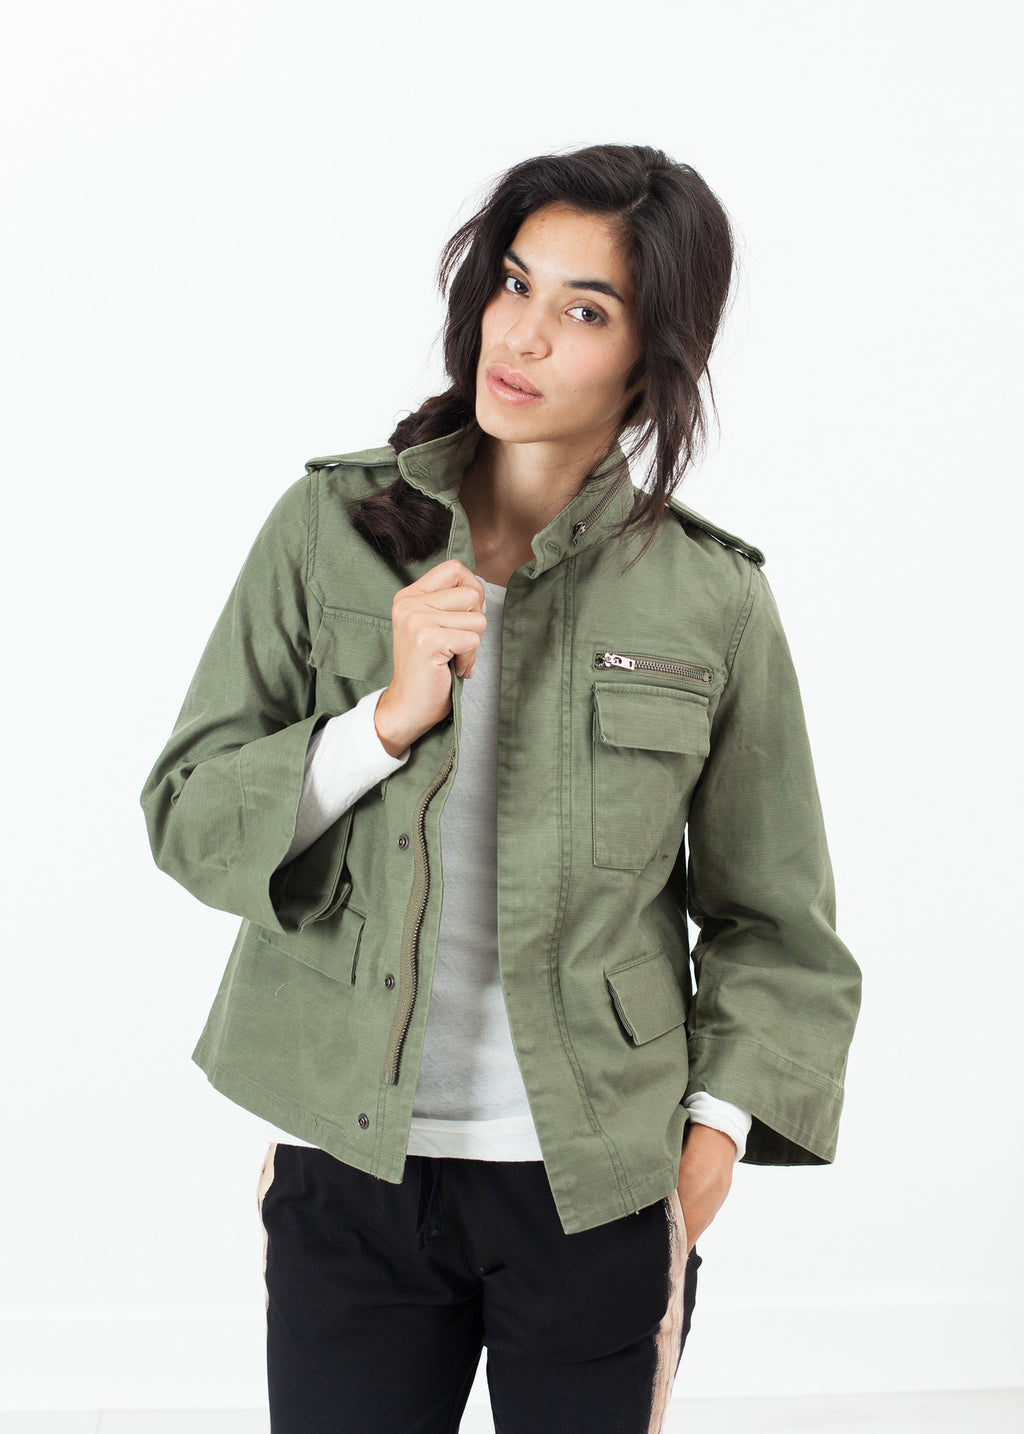 Big Army Jacket in Olive